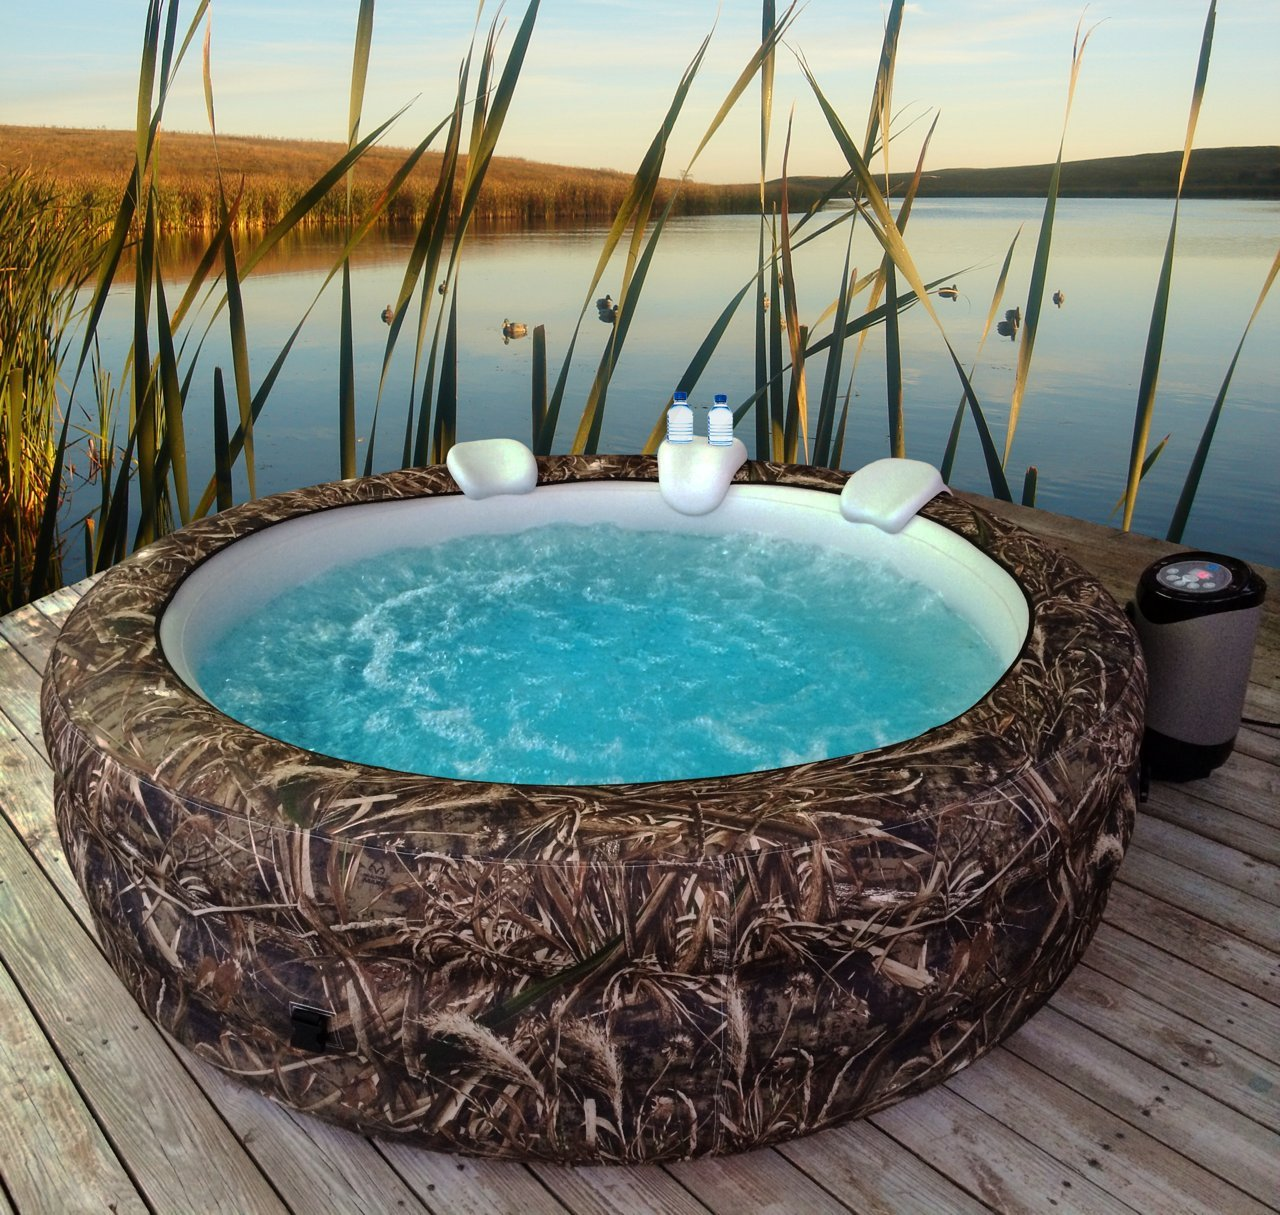 Vanish Spa 6-person Portable Hot Tub Realtree Max5